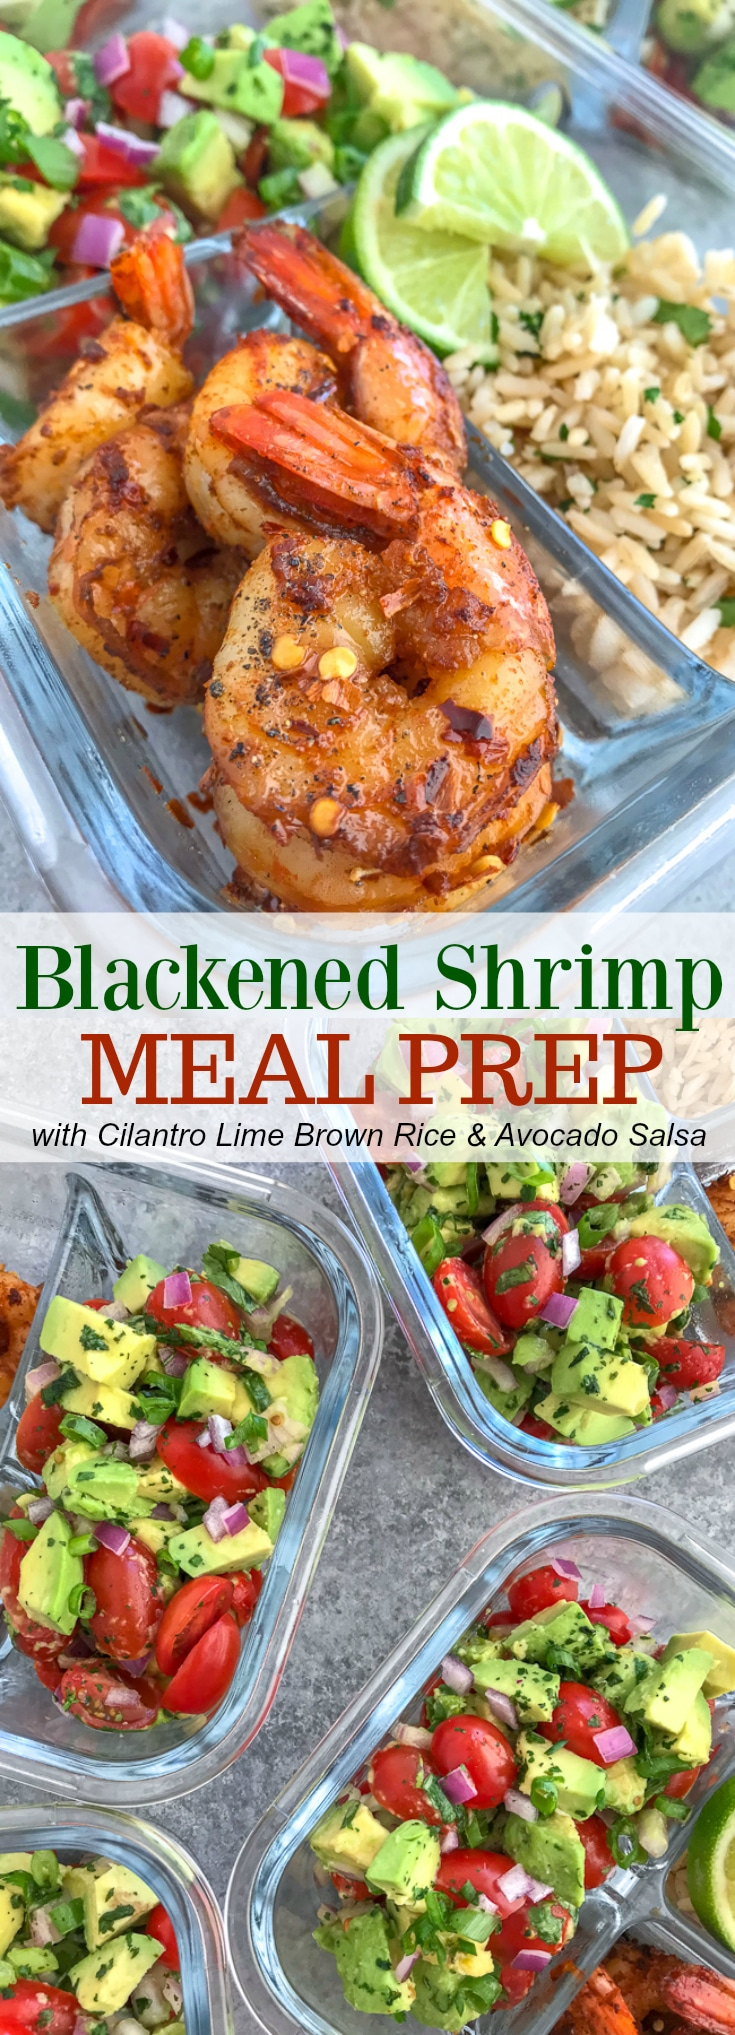 Blackened Shrimp Meal Prep With Peanut Butter On Top